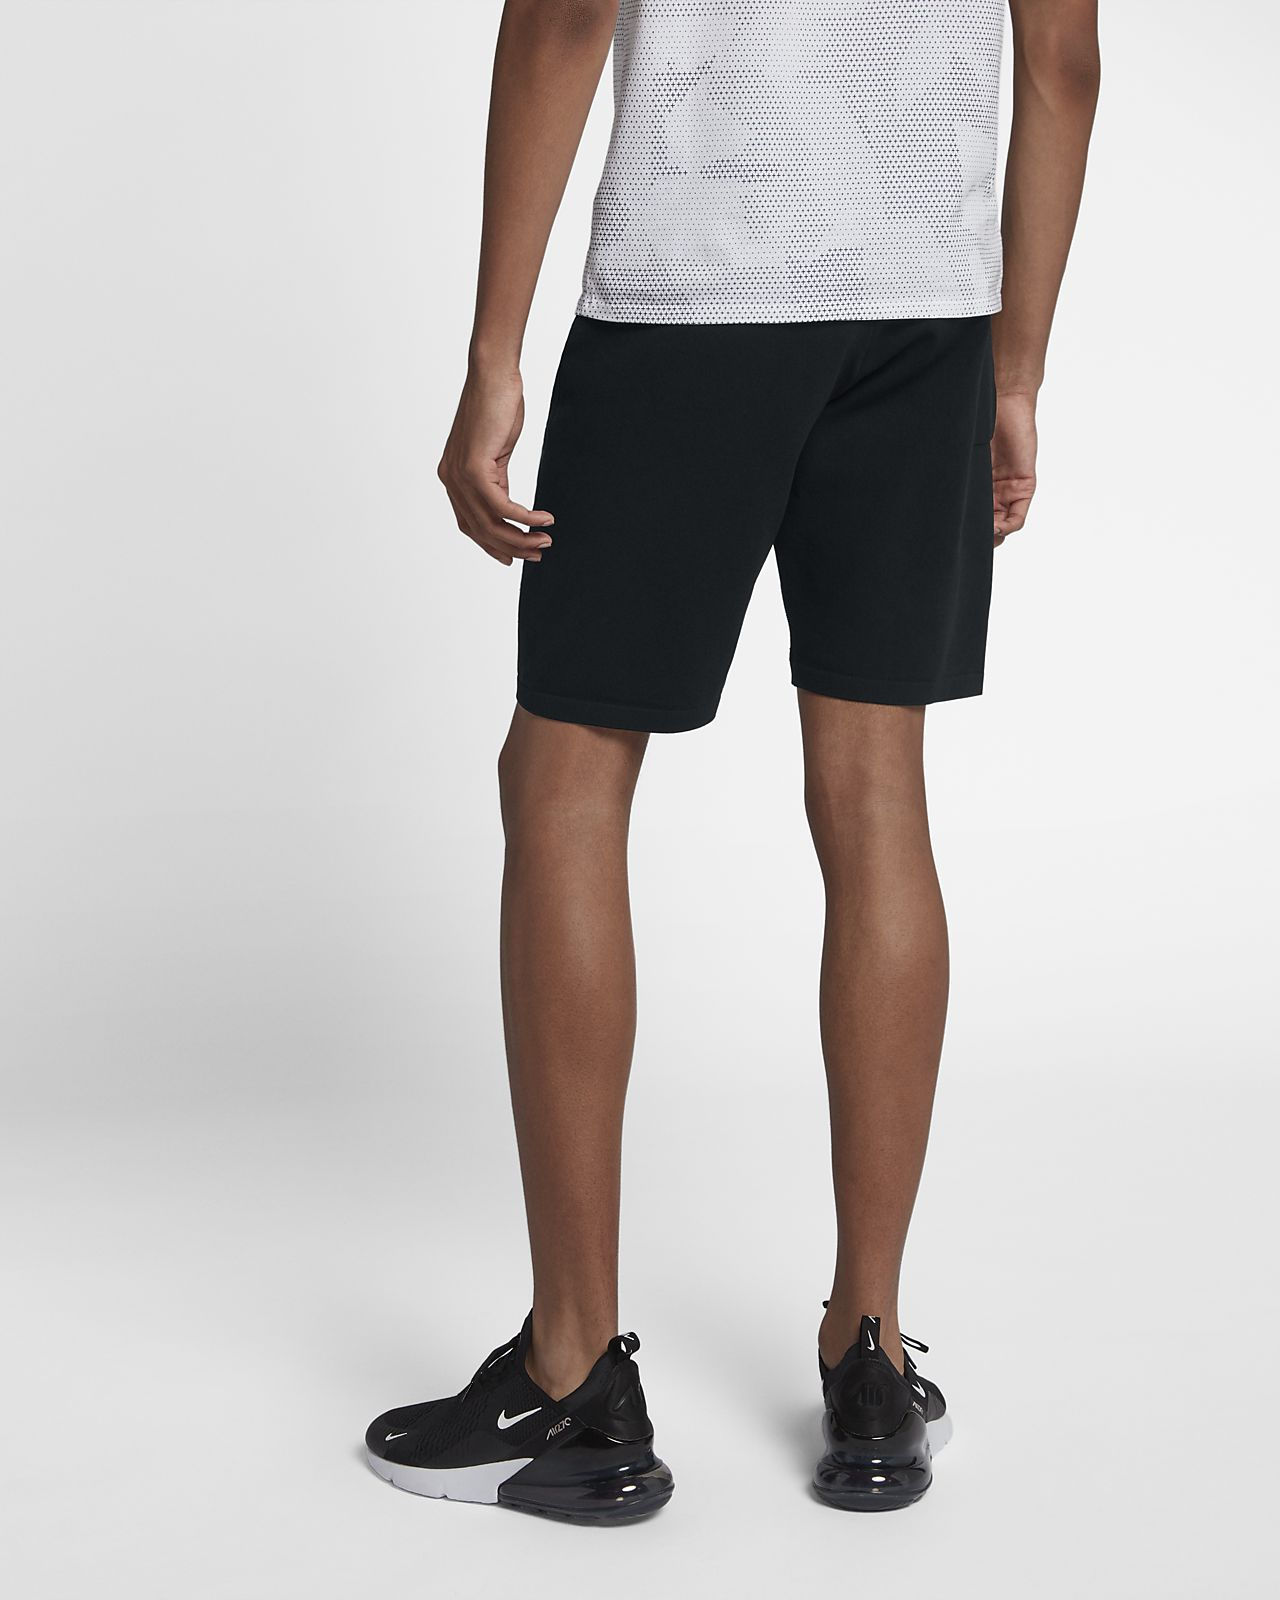 Nike Sportswear Tech Knit Men's Shorts Black